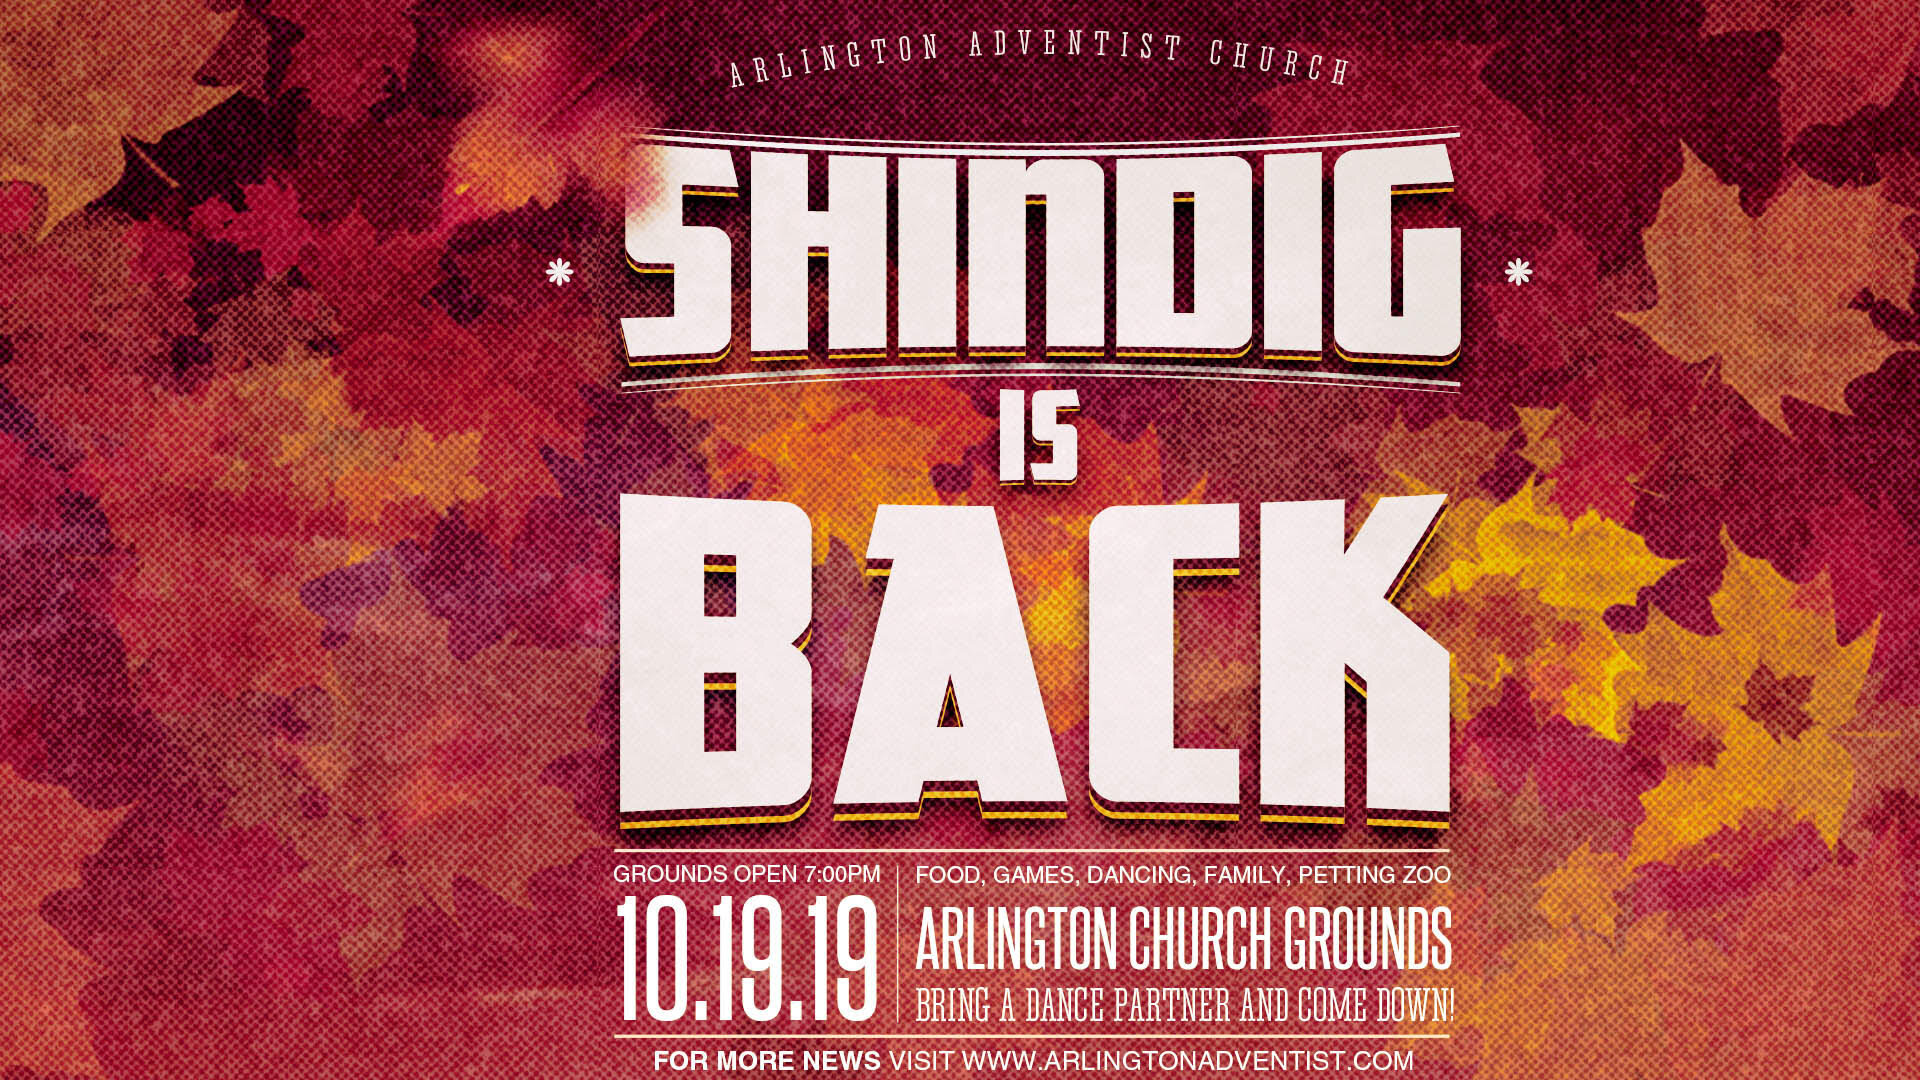 Shindig: A Texas-size Party October 19, Saturday, 7:00PM  Arlington Seventh-day Adventist Church Grounds 4409 Pleasantview Drive, Arlington, TX 76017  Free event:  https://arlingtonadventist.squarespace.com/events/2019/9/23/shindig-a-texas-size-party  Facebook:  https://www.facebook.com/events/1194506114065917/   Enjoy Shindig, a Texas-size party. Shindig has something for everyone. For the kids, we will have face painting, bounce houses and a petting zoo. For the adults, lawn games and line dancing will be the order of the evening. For everyone, great food, wonderful fellowship and to capture the fun of the evening, a photobooth.